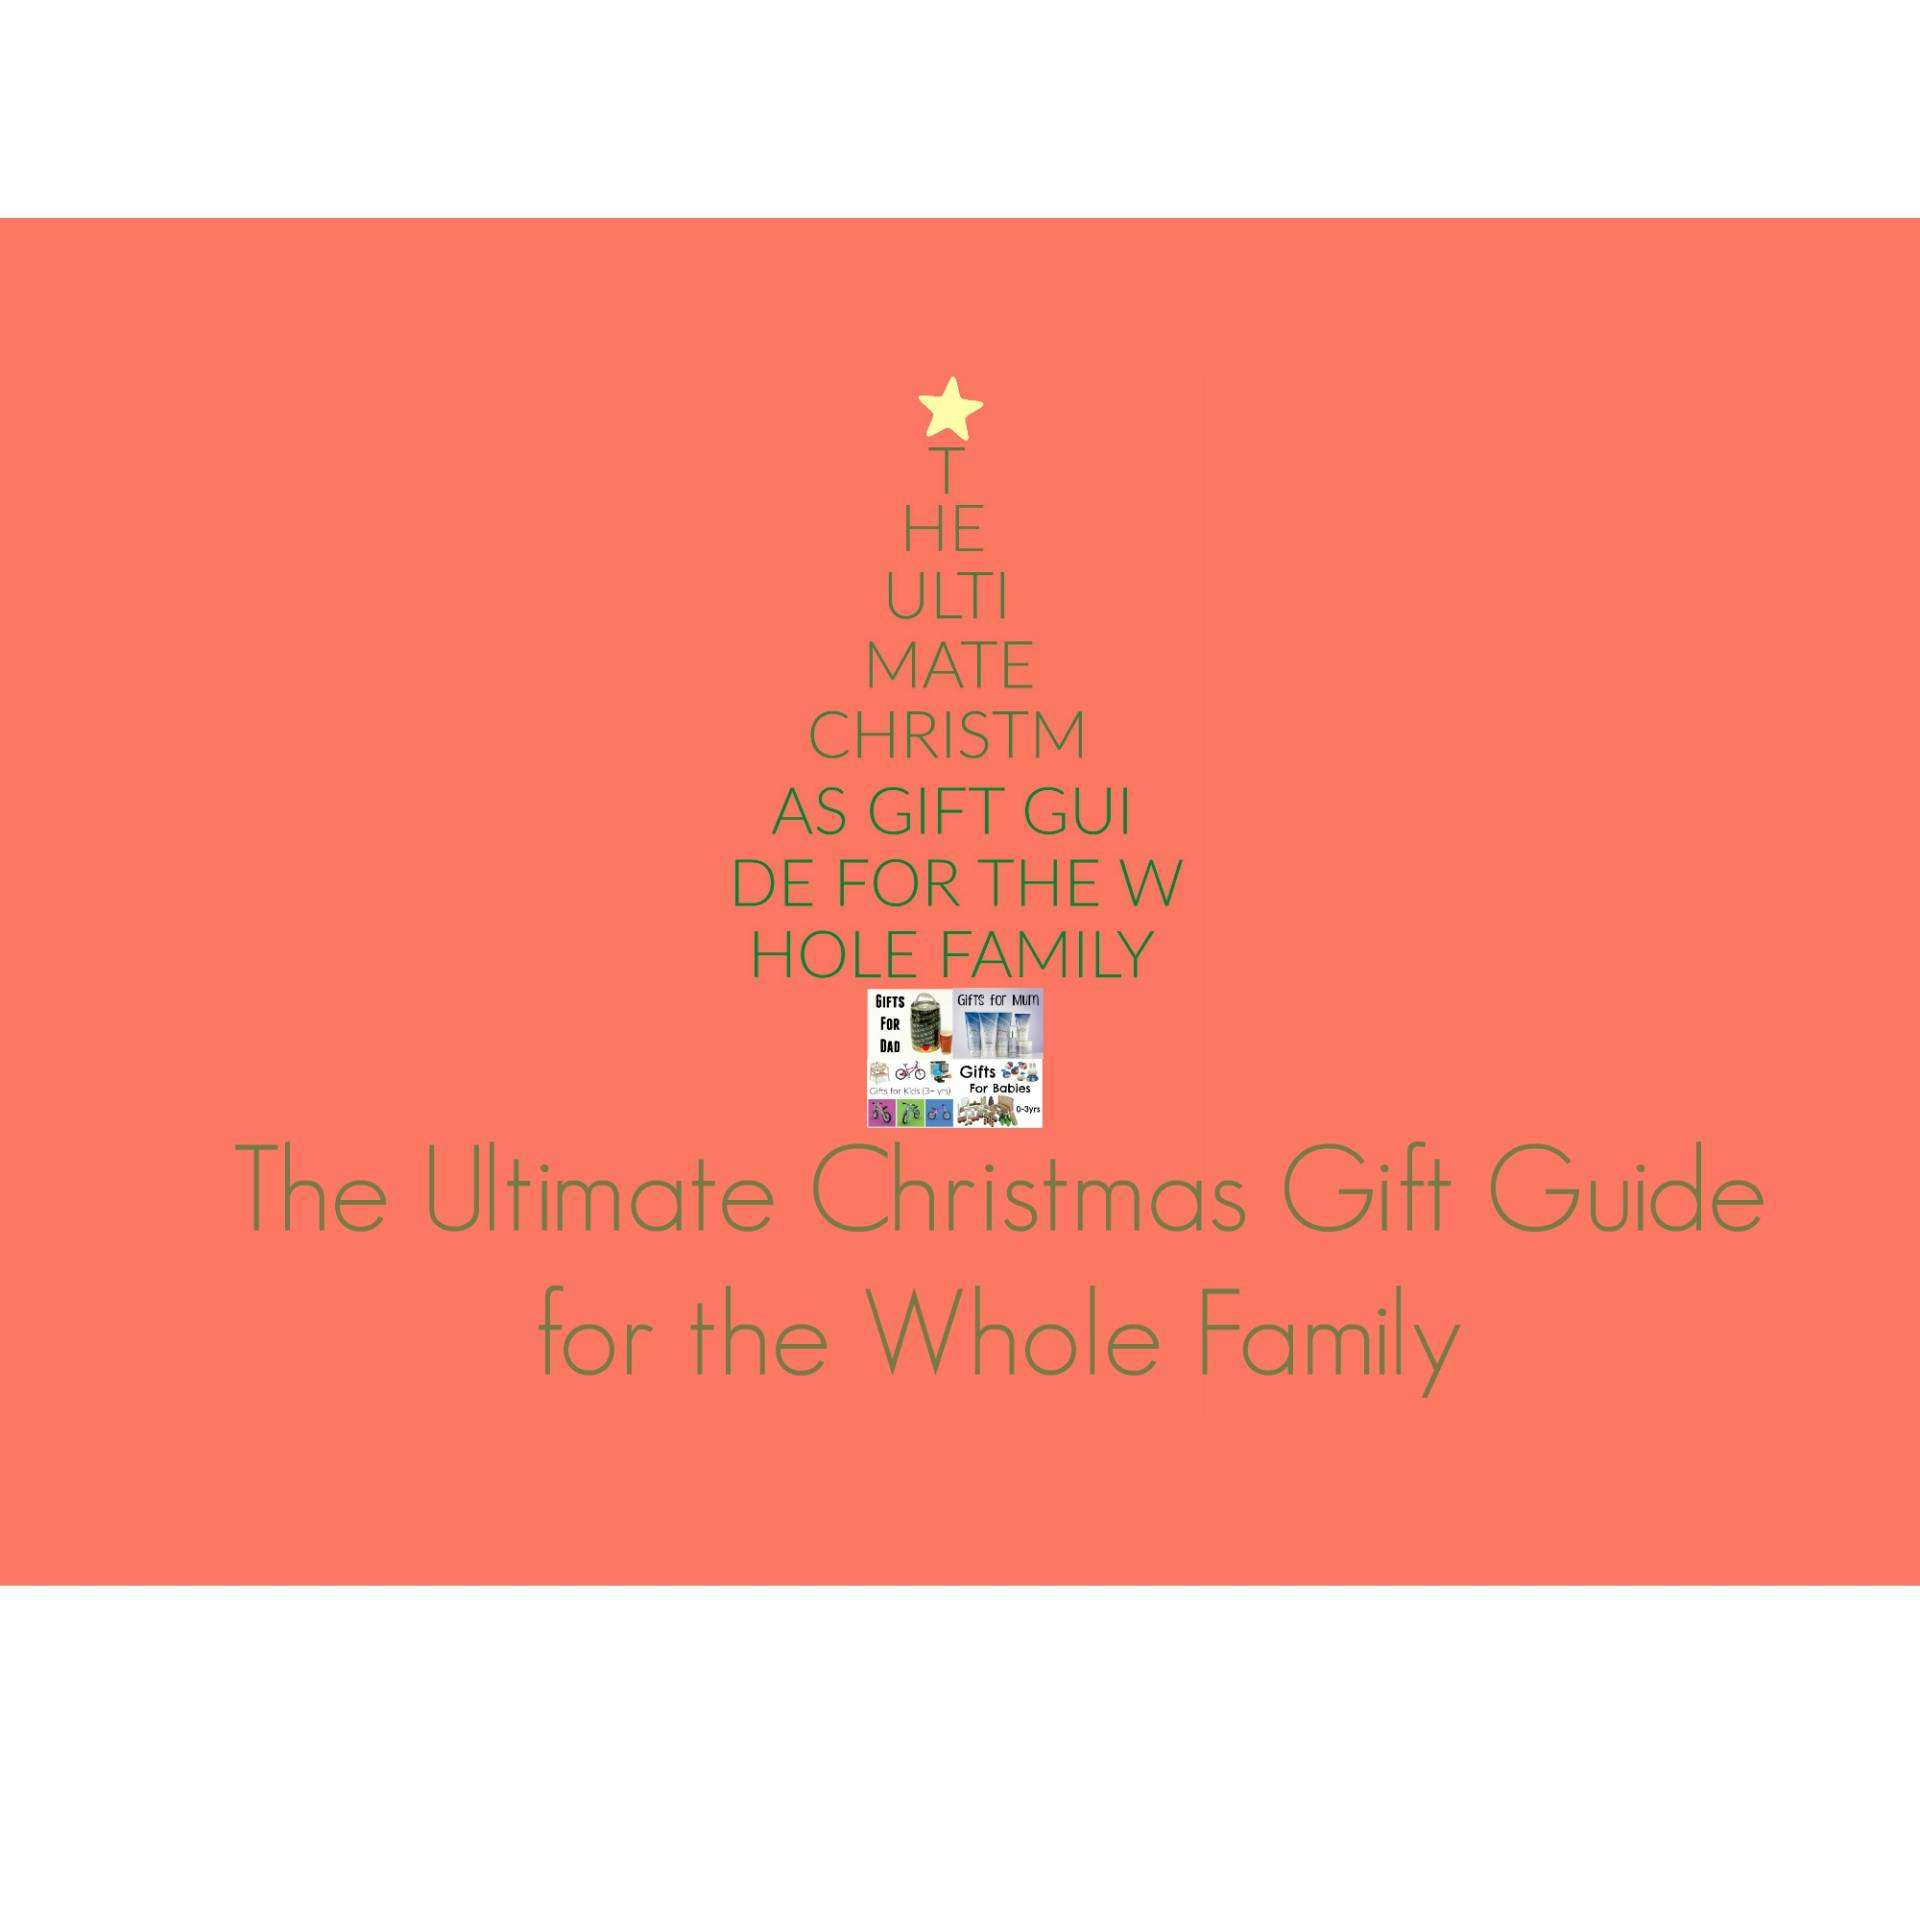 WIN! Ultimate Christmas Gift Guide for the Whole Family: WIN a Huggies Bundle, Keg of Beer & more!, Christmas gift guide Featured1%, new-dad%